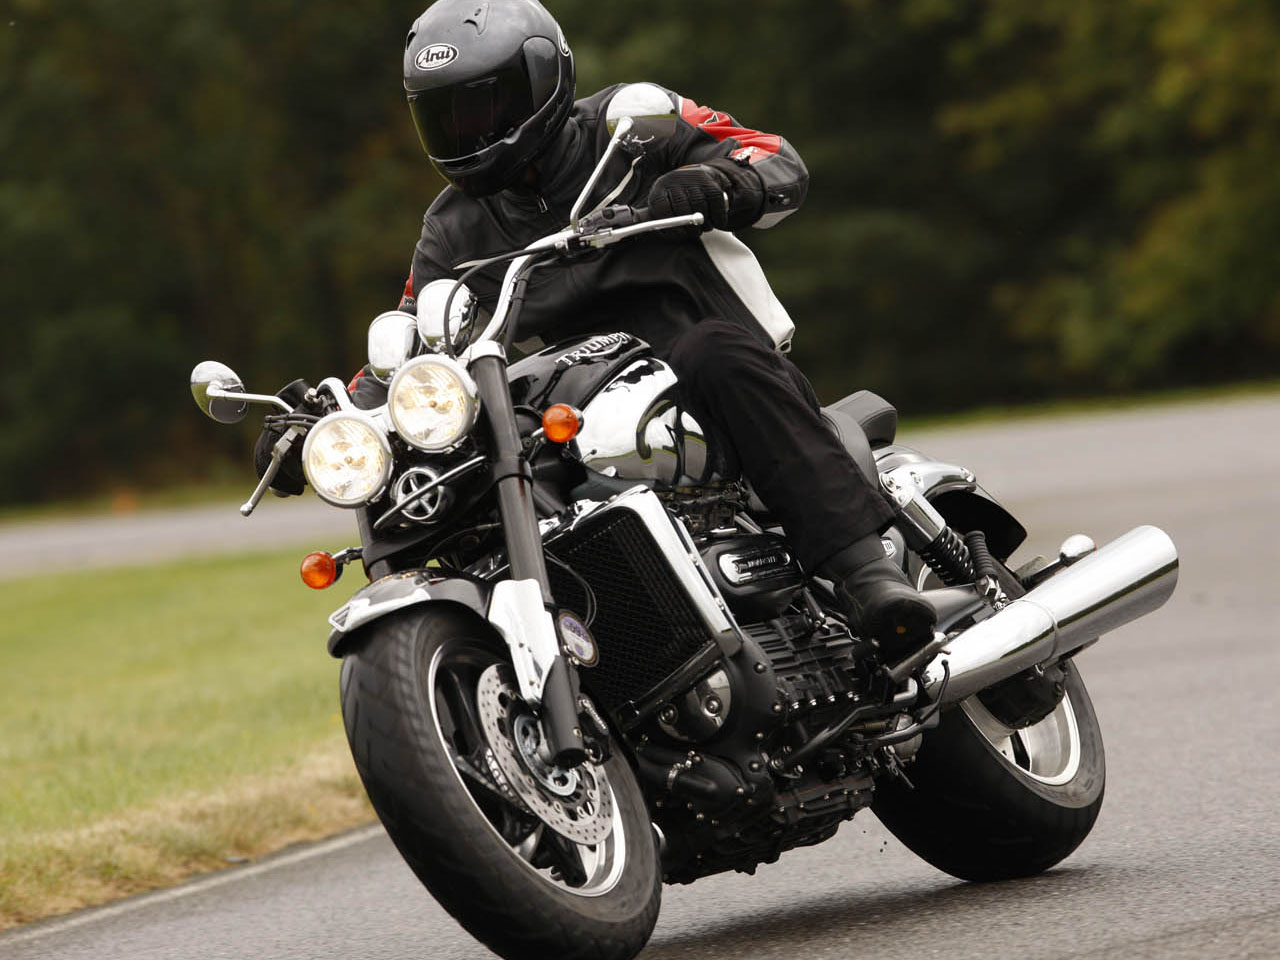 triumph rocket iii motorcycle - photo #39